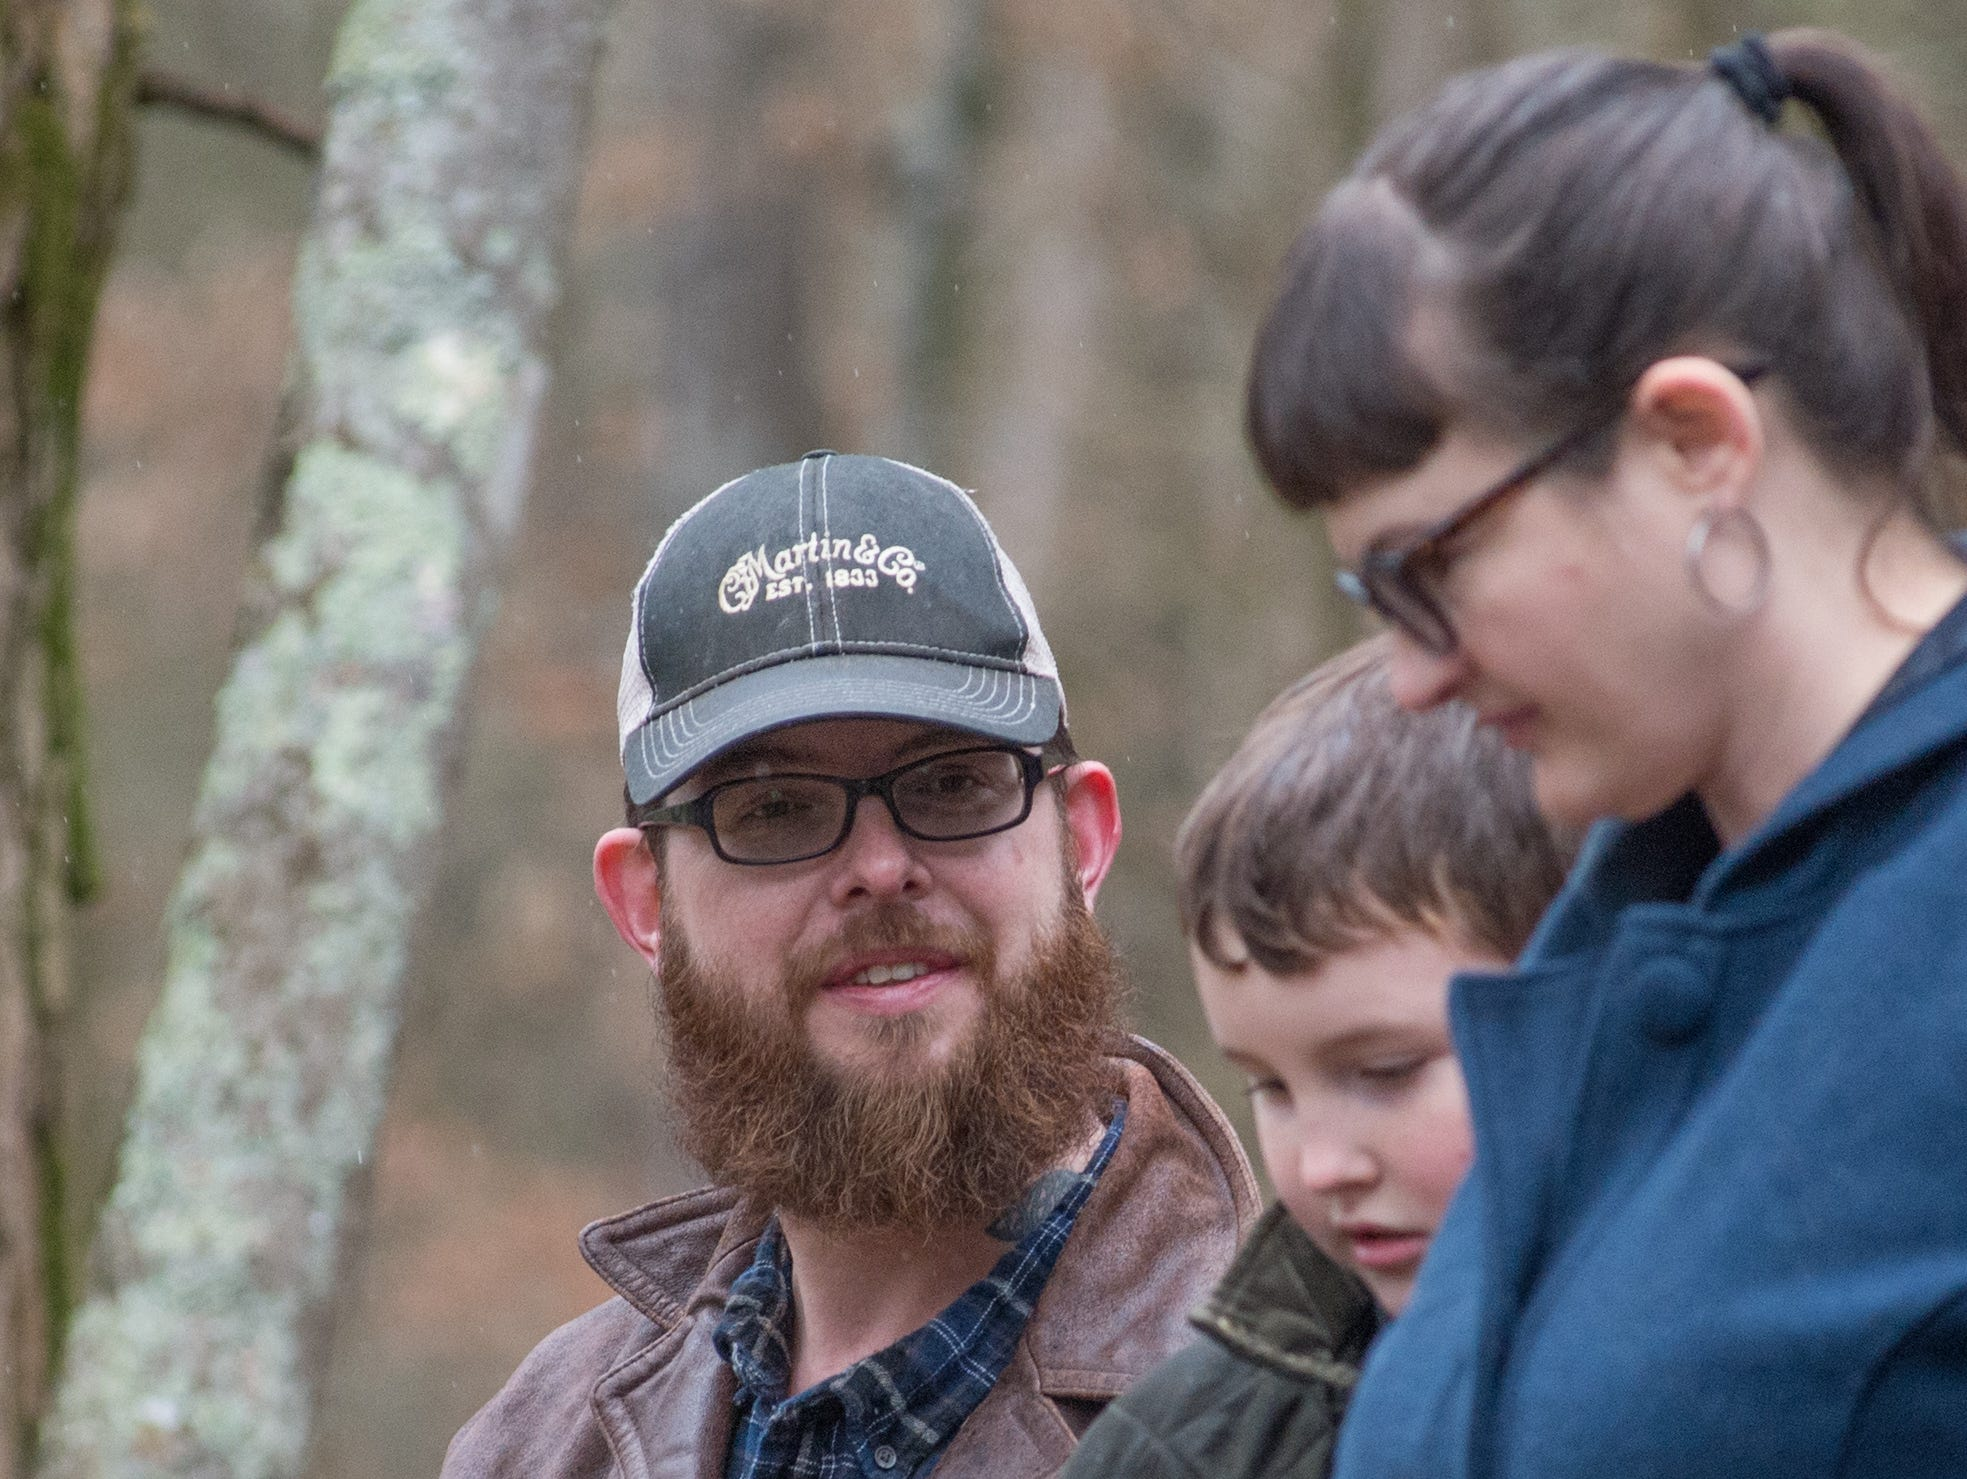 Jake Cooper looks on during a Tomahawk Throwing for Beginners event hosted by Middle Tennessee History Coalition at Bledsoe Creek State Park on Saturday, Jan. 12.